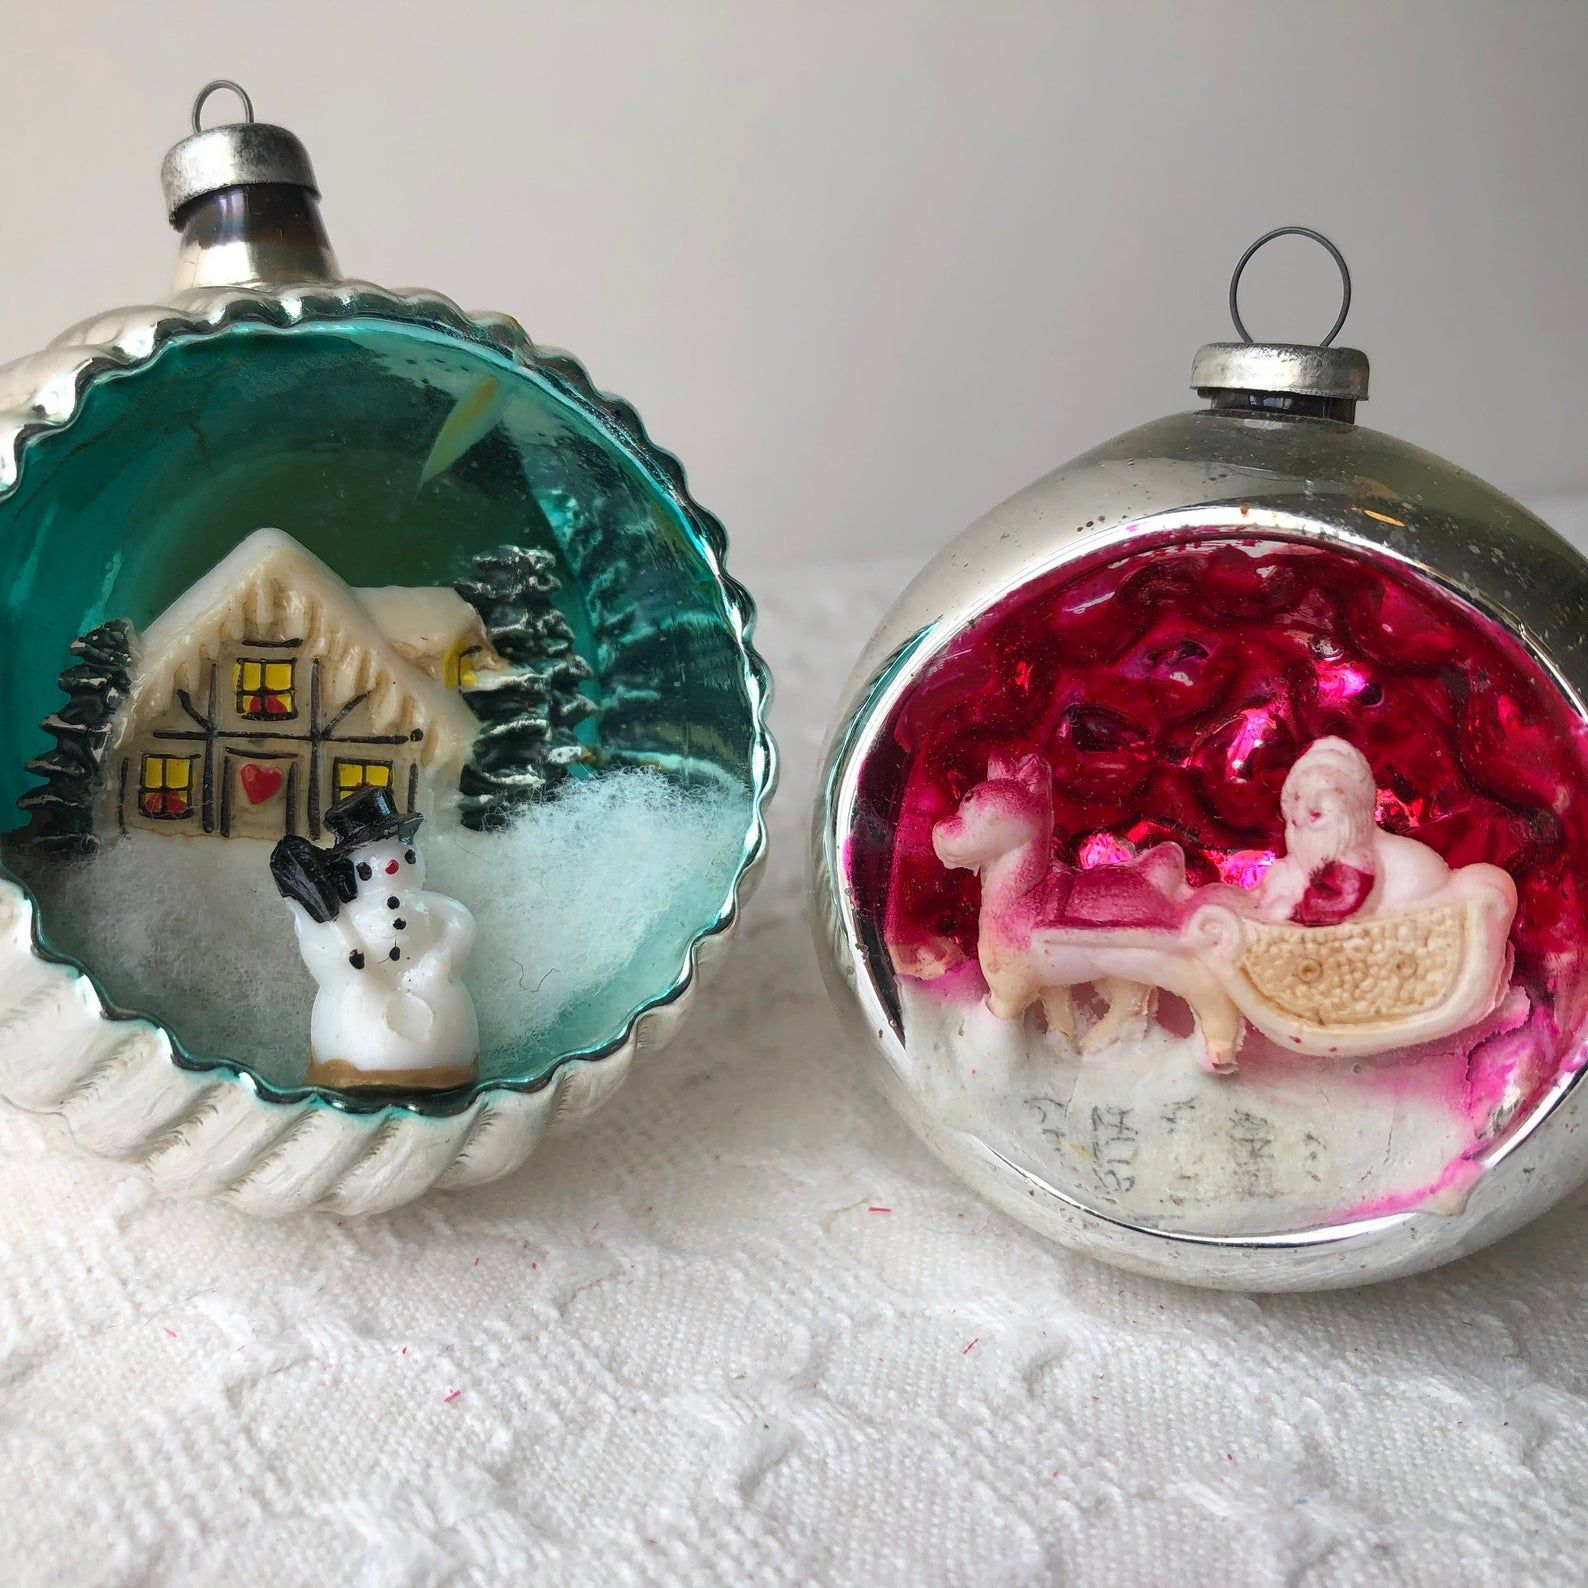 Unsilvered Tinsel Ornament Wartime Christmas Ornaments German Ornaments 1940s RARE German Unsilvered HOUSE Ornament with TINSEL Inside